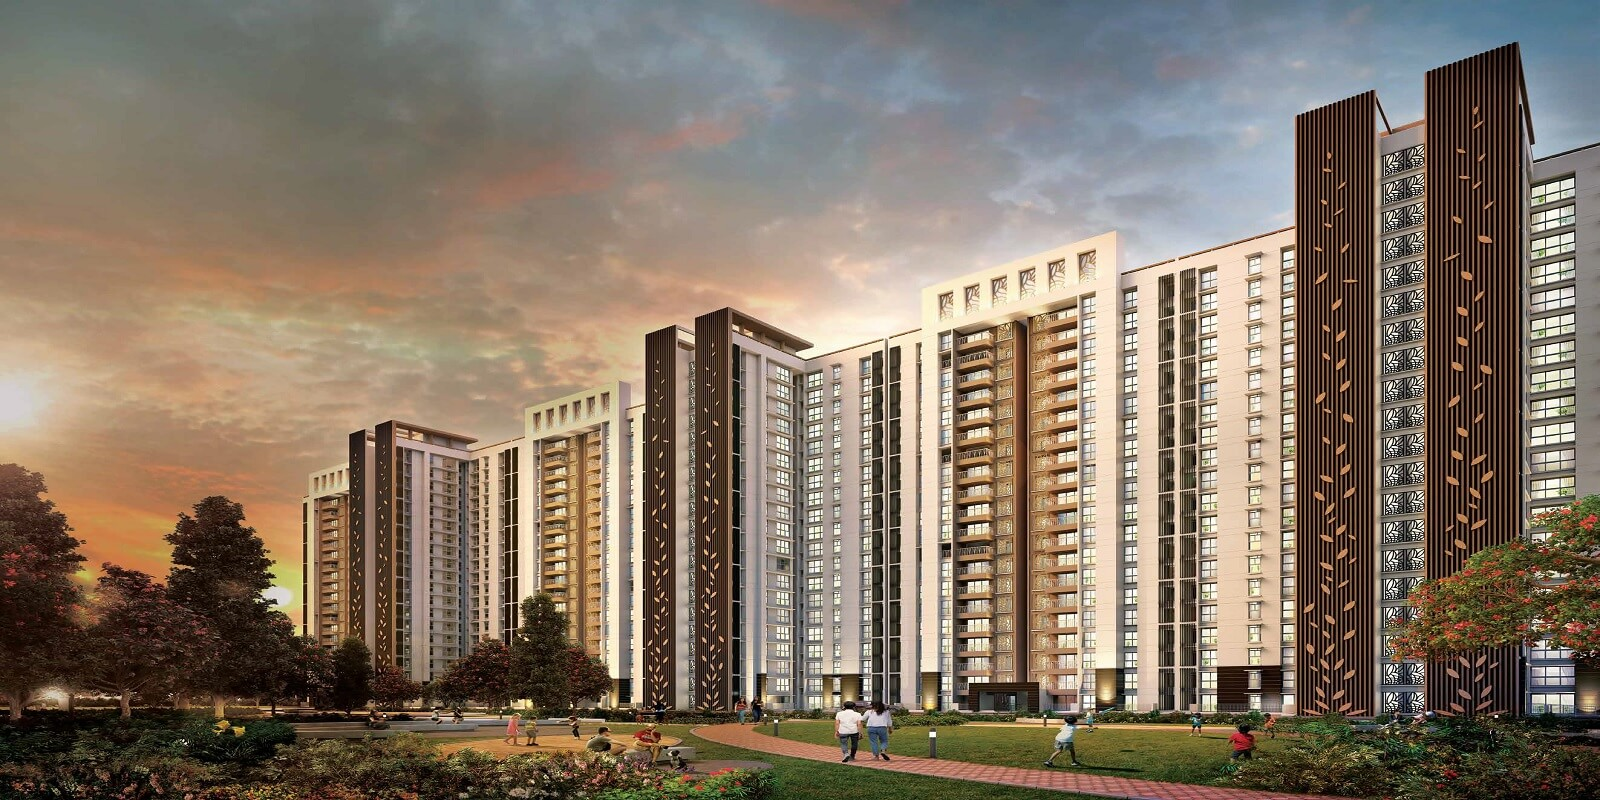 lodha upper thane tiara a to b project large image2